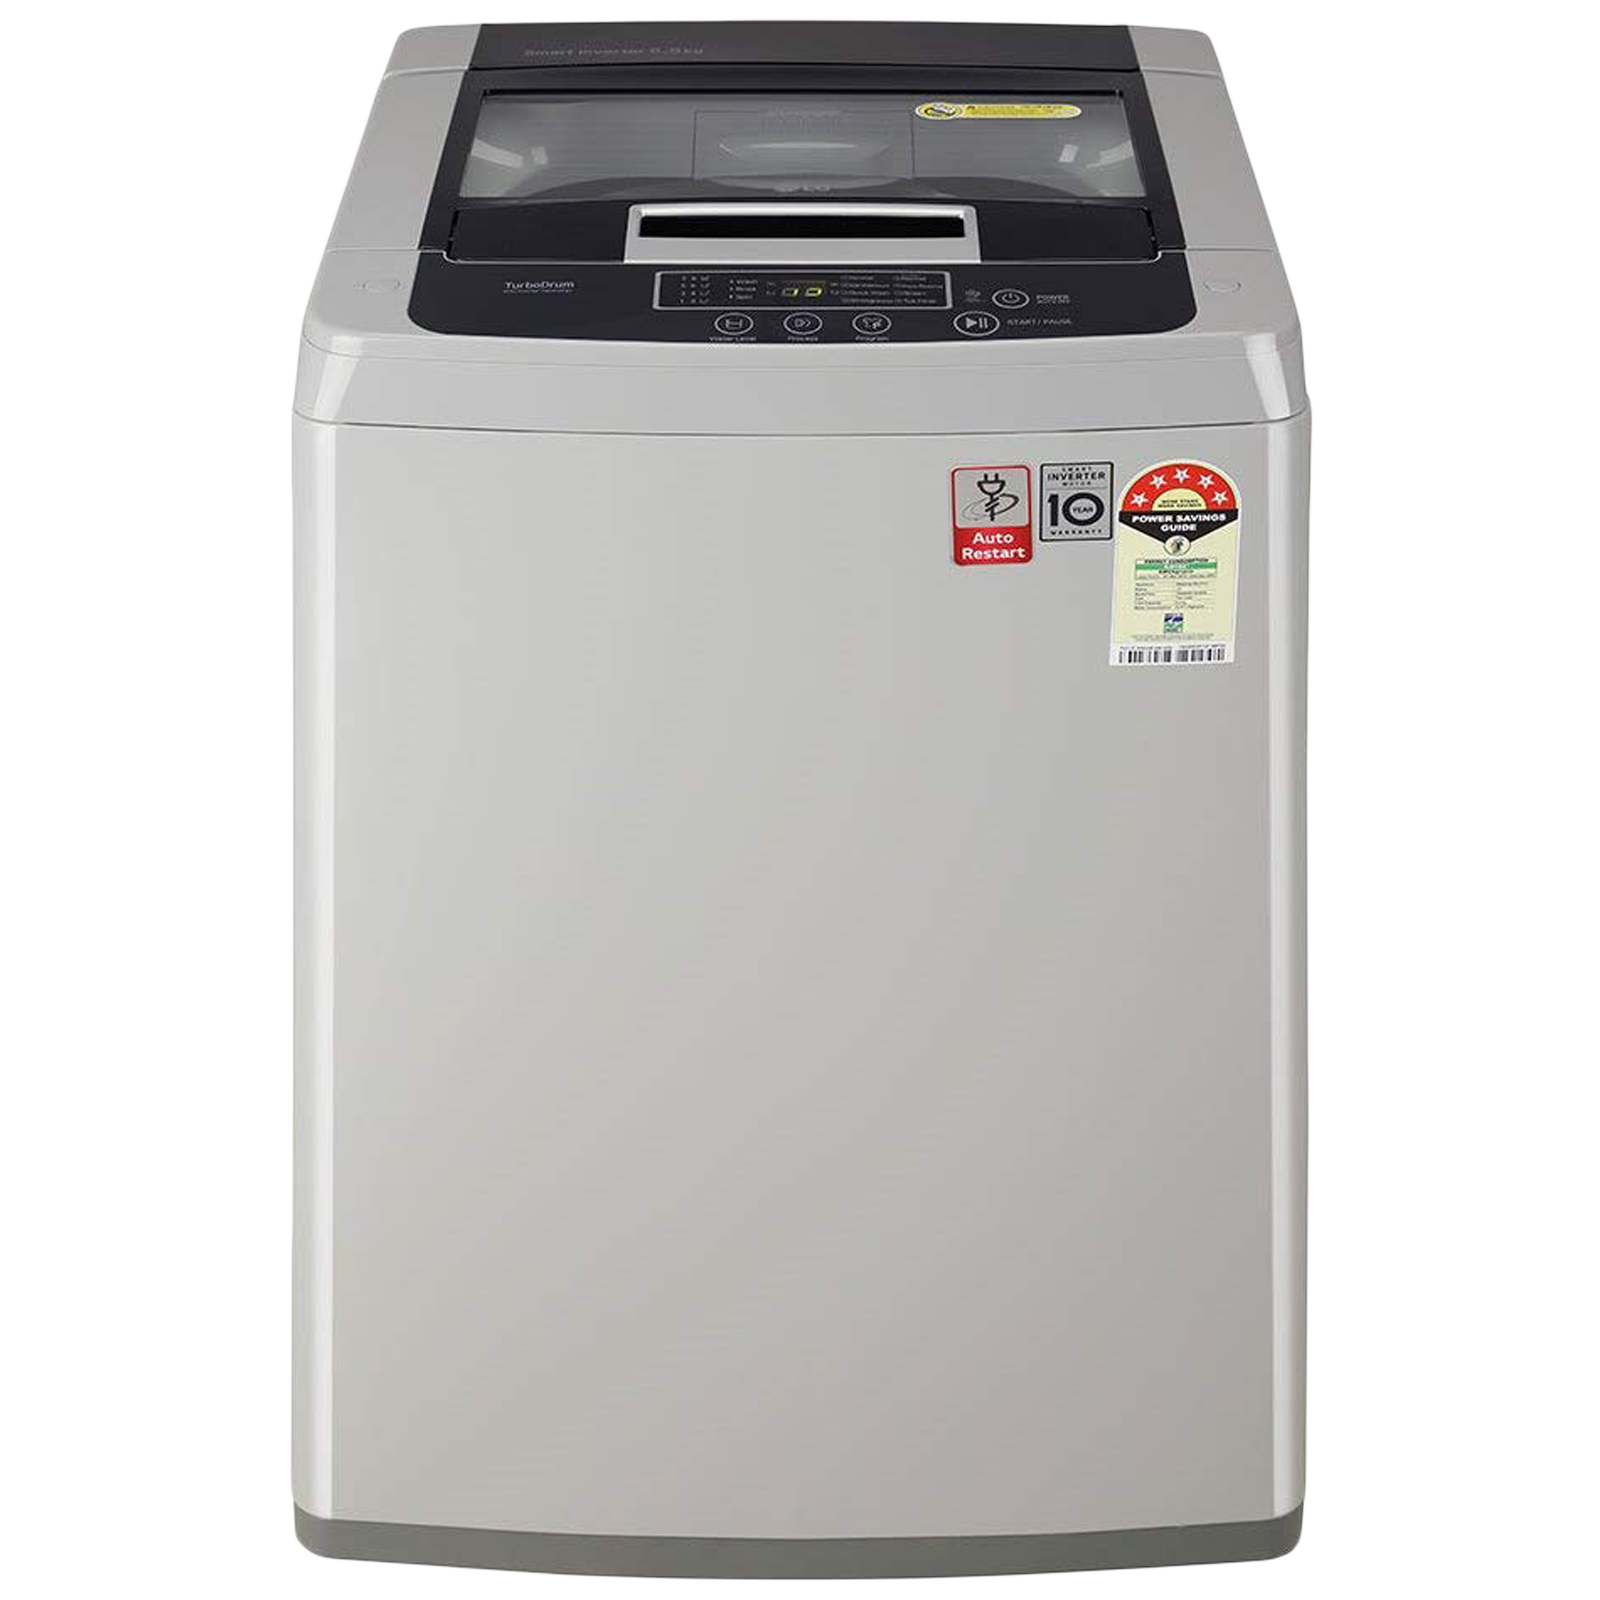 LG 6.5 kg 5 Star Fully Automatic Top Load Washing Machine (Smart Diagnosis, T65SKSF1Z.ASFQEIL, Middle Free Silver)_1